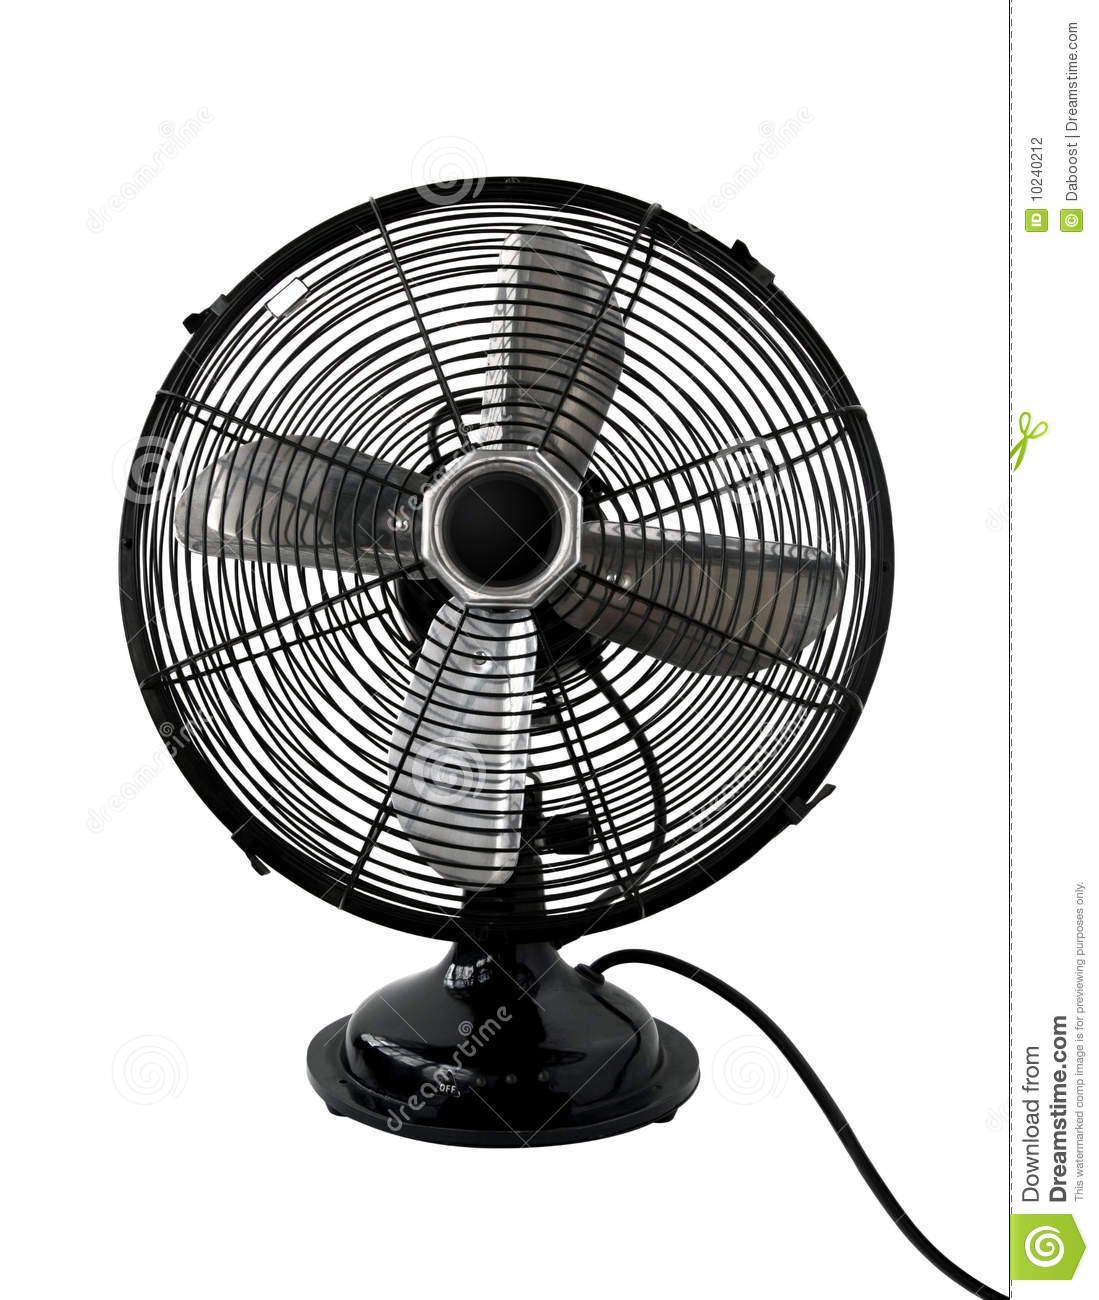 electric fan stock photo  image of propeller  electric